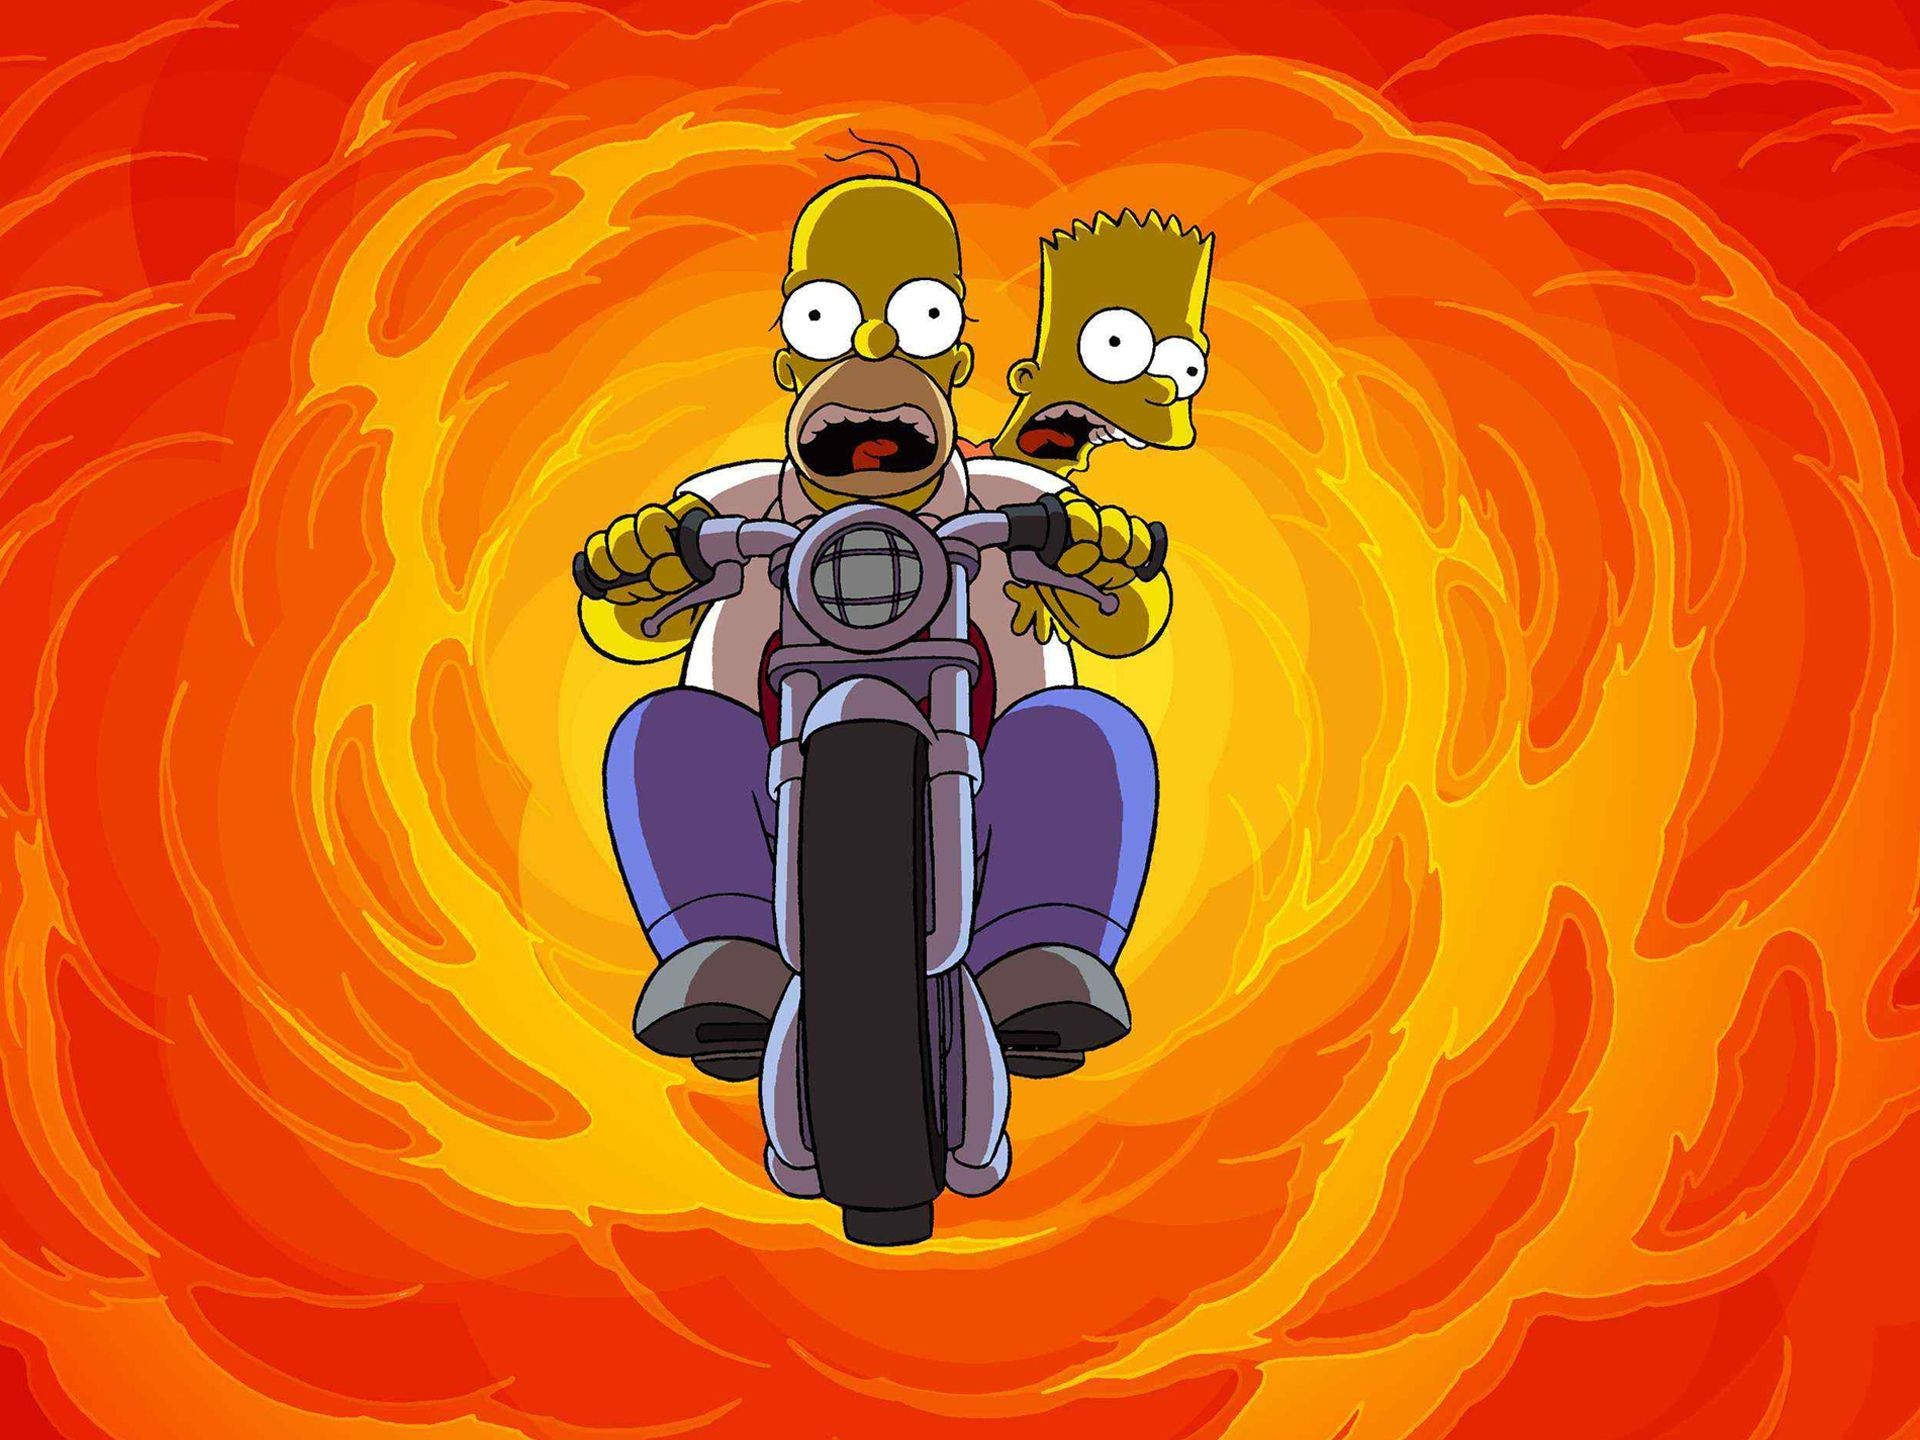 1920x1440 TV Show - The Simpsons Bart Simpson Homer Simpson Wallpaper